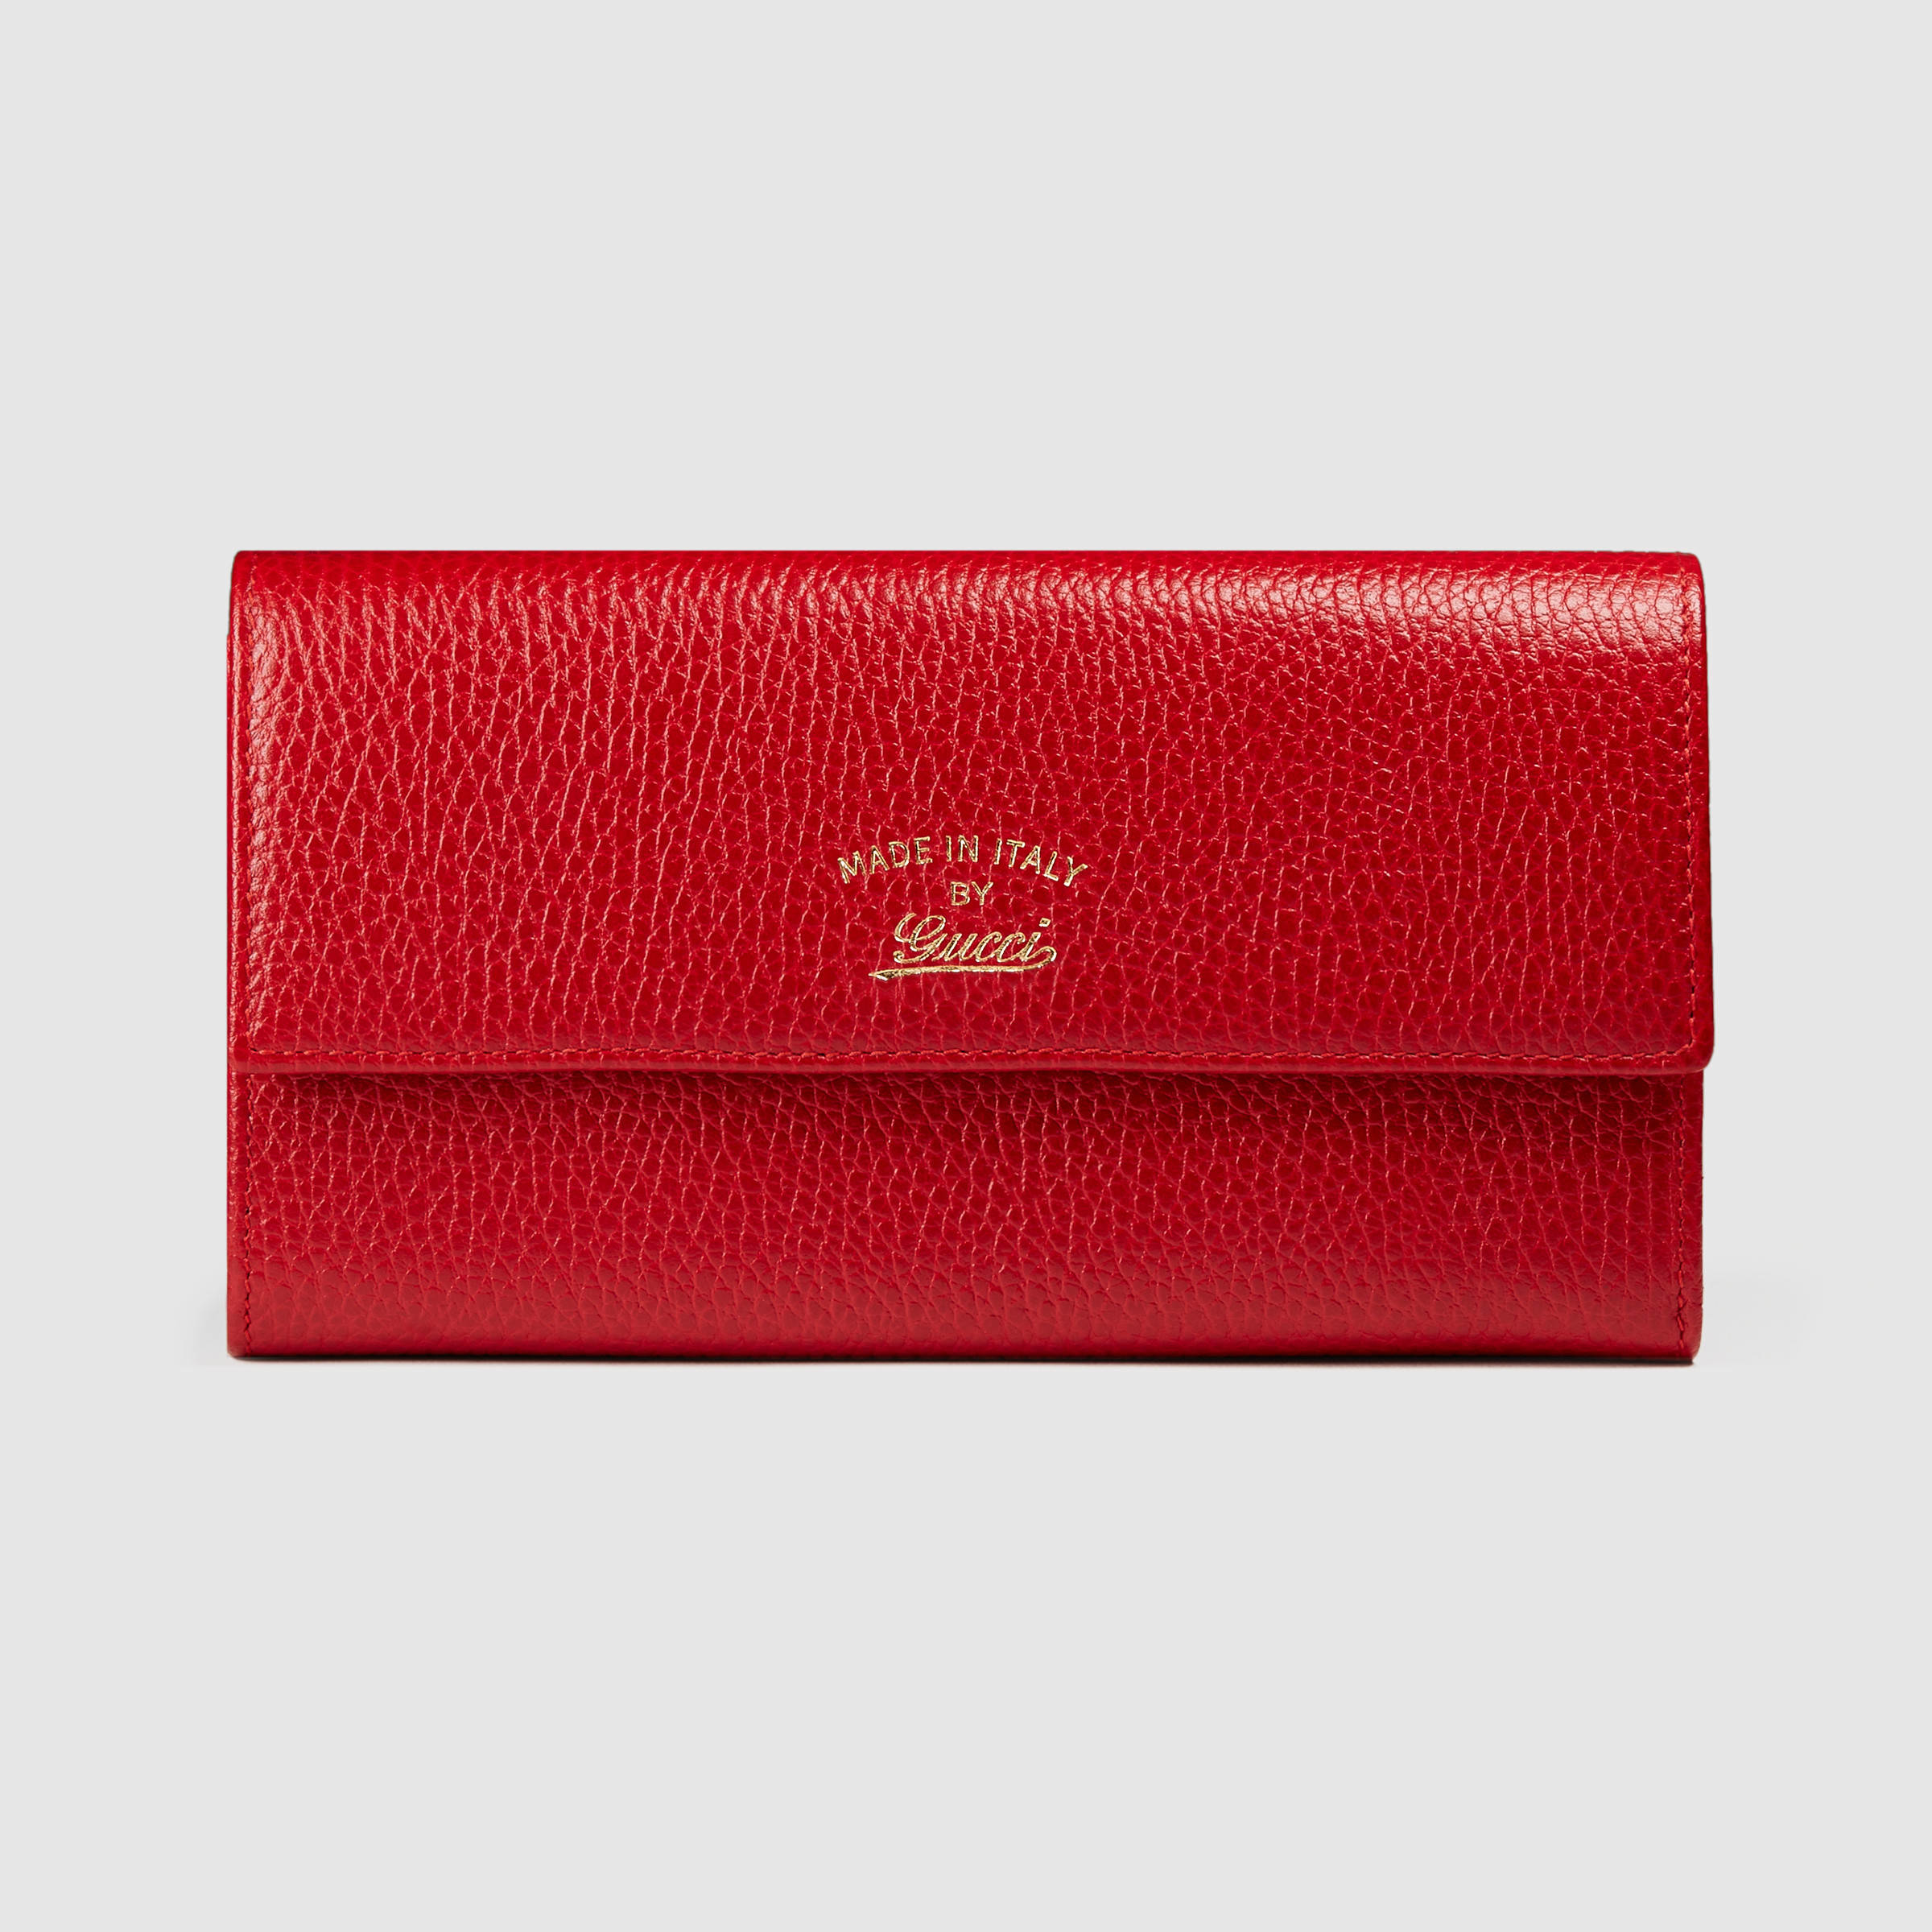 Gucci Swing Leather Continental Wallet in Red (red leather ...